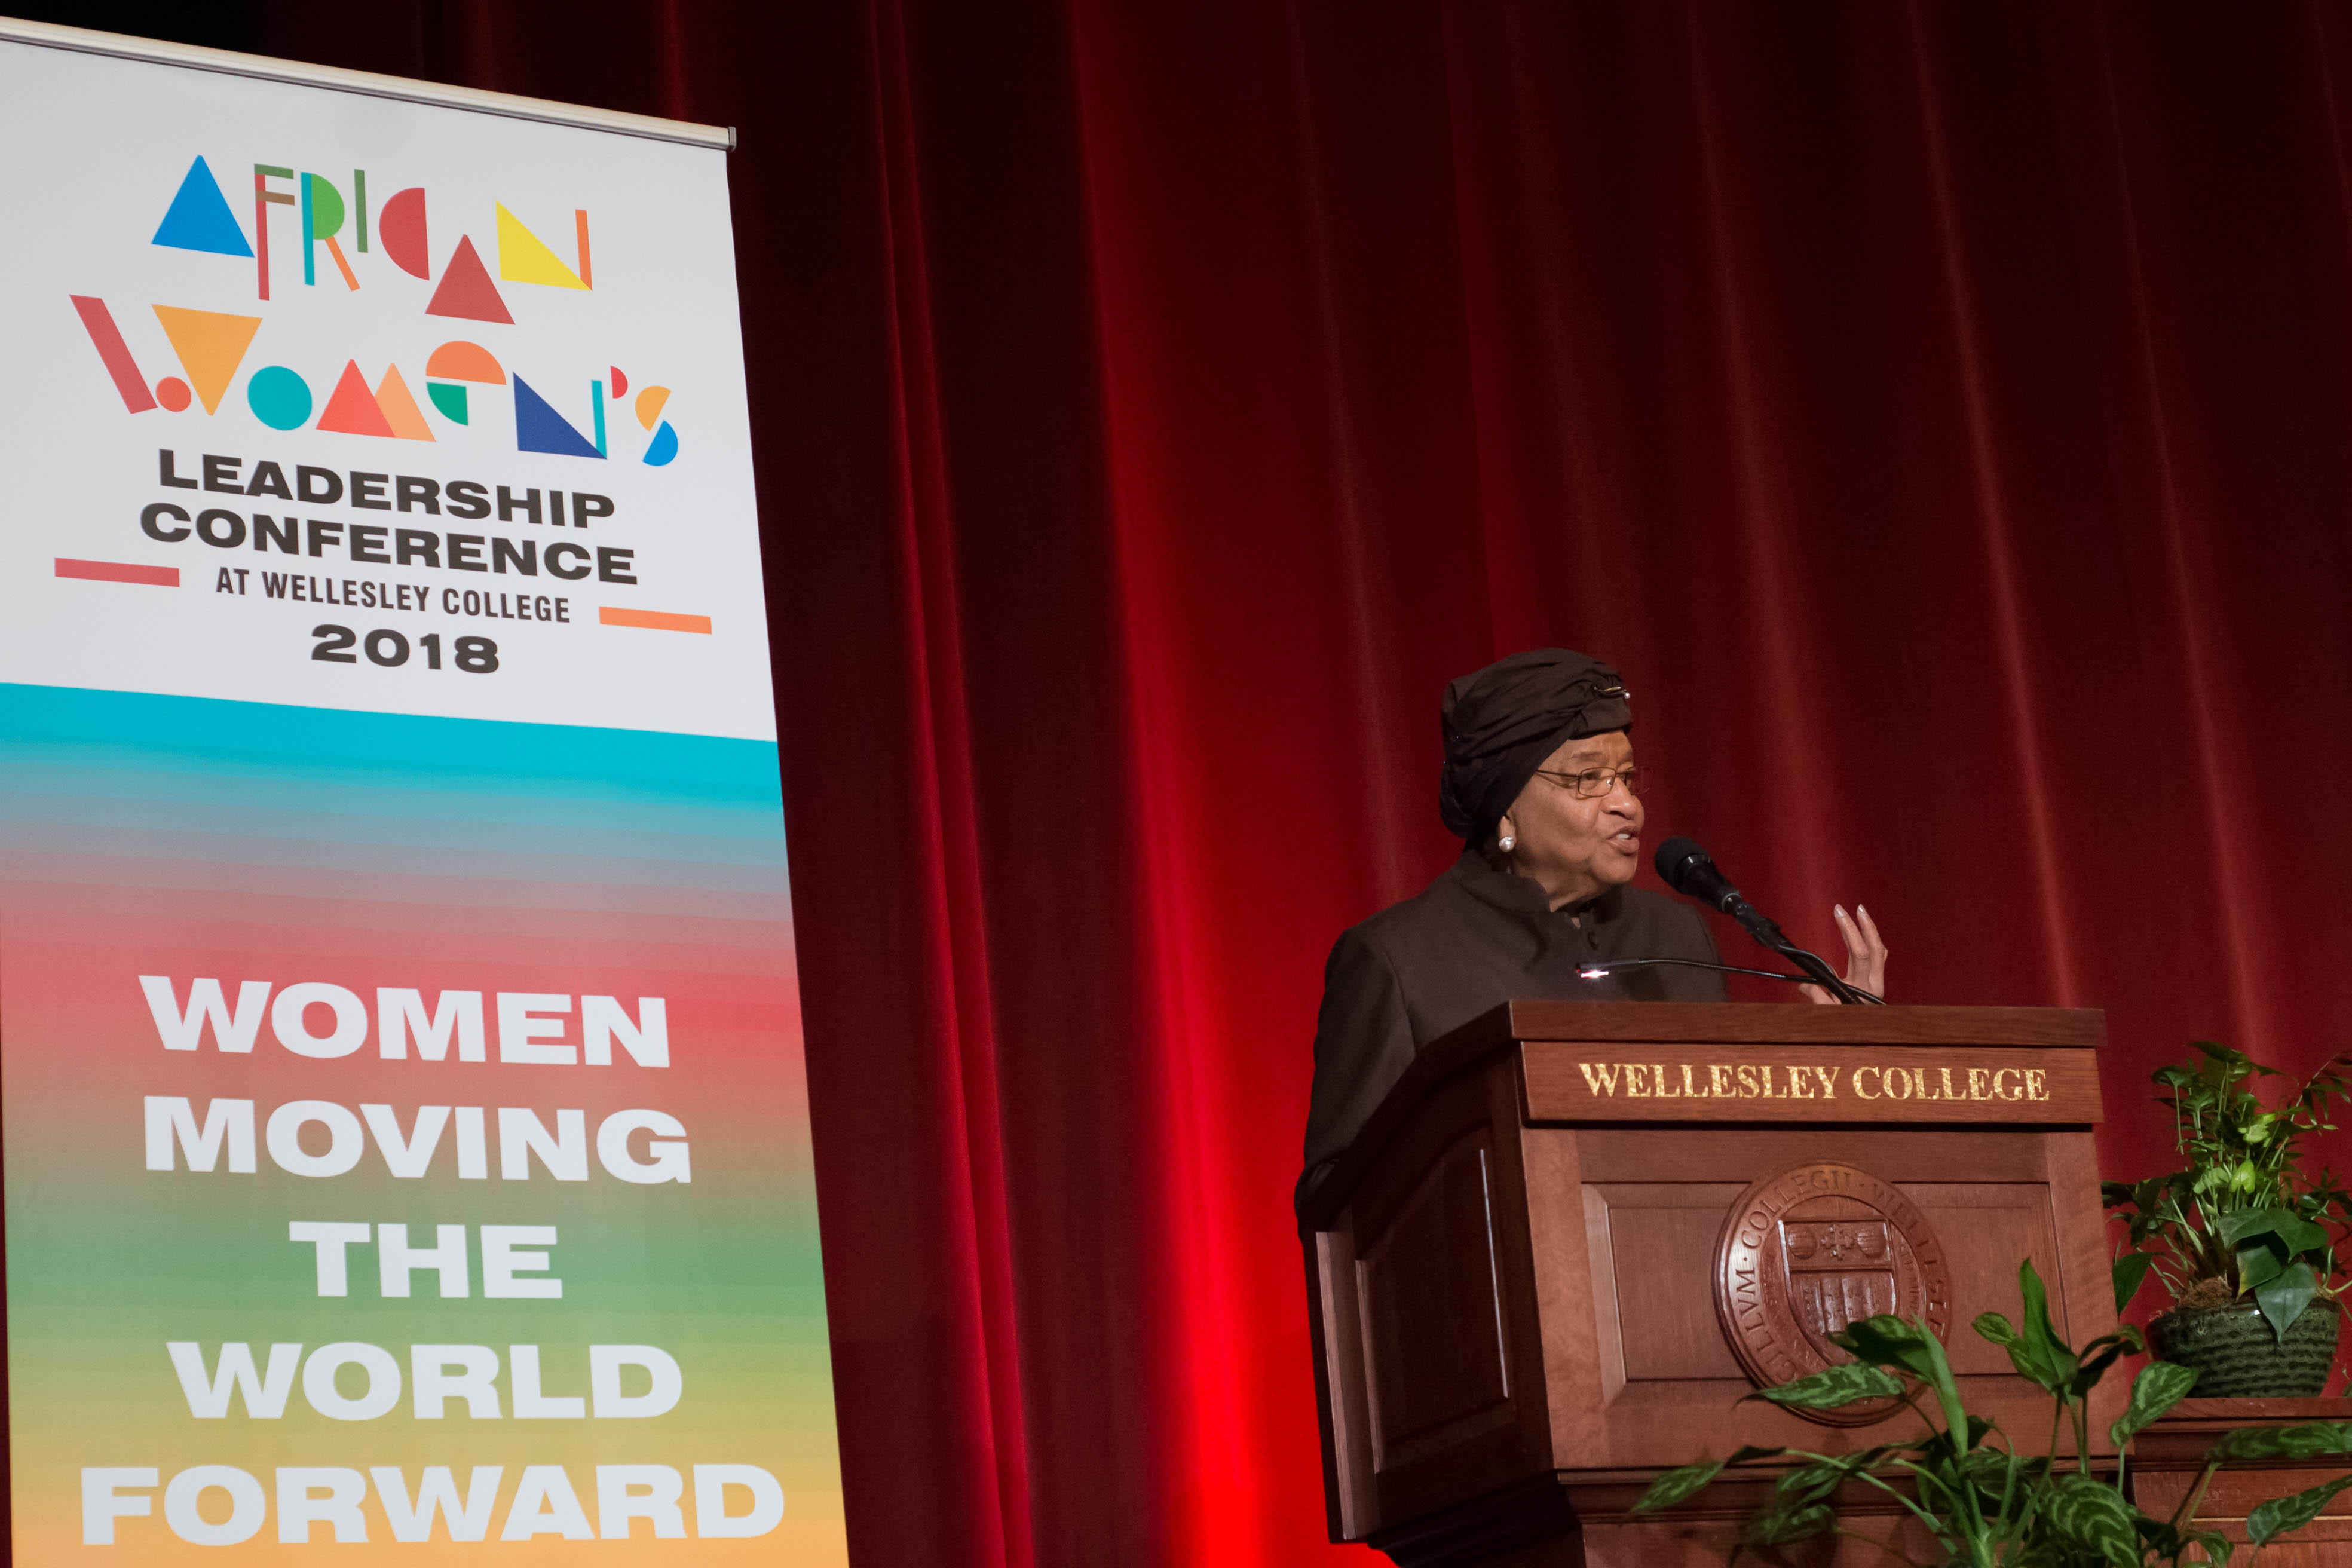 Former Liberian President Ellen Johnson Sirleaf Vows To Continue To Lead Women Of The World